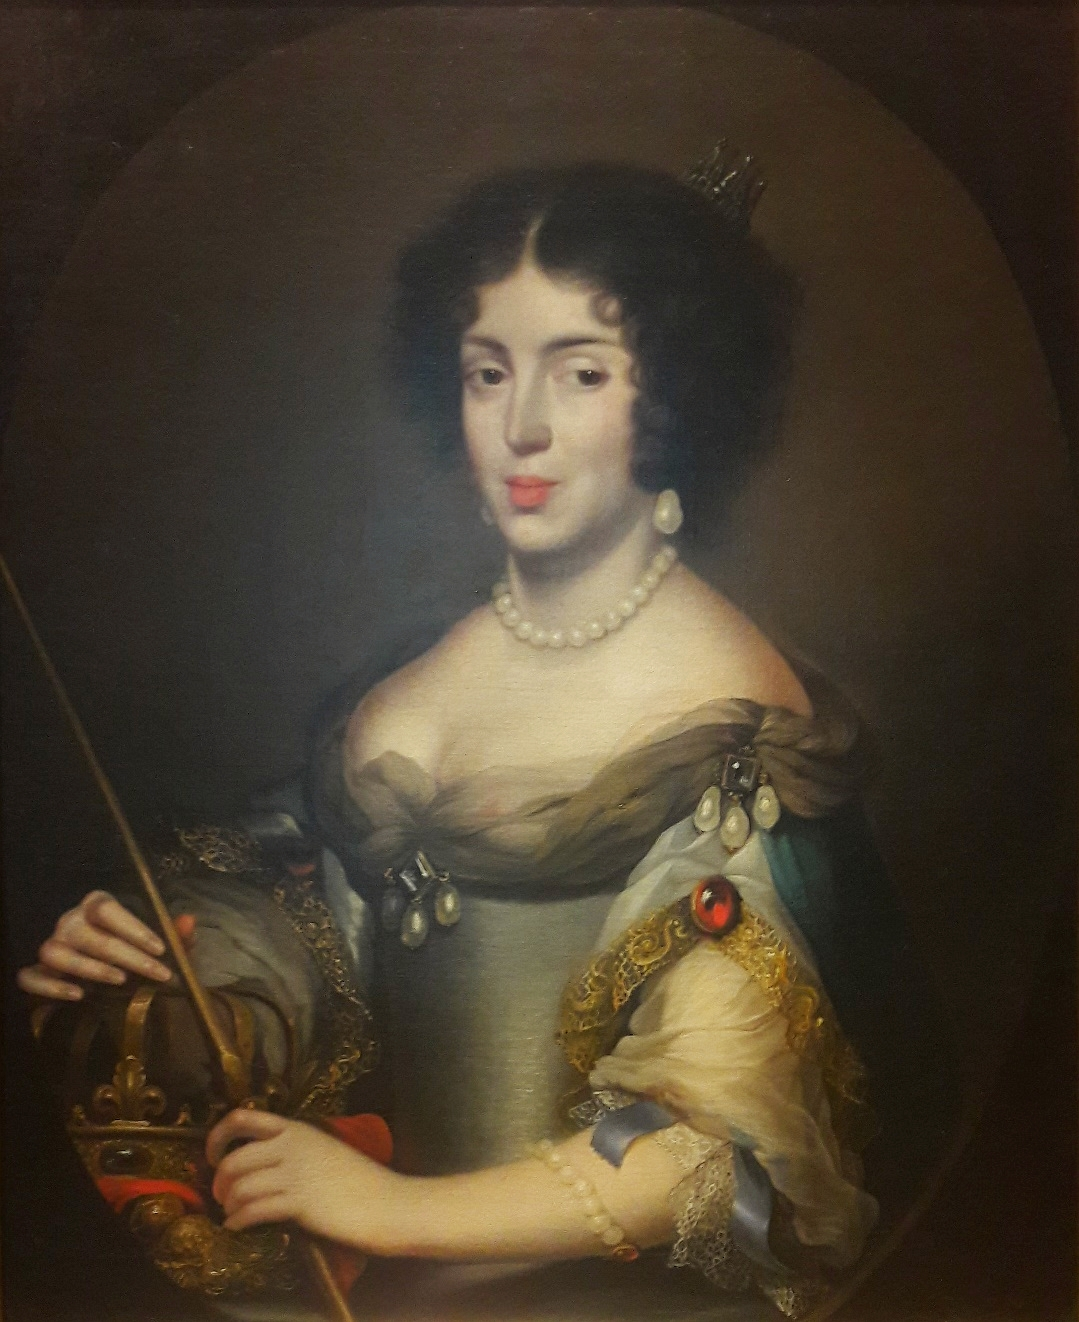 file:anonymous marie casimire sobieska with a nipple visible